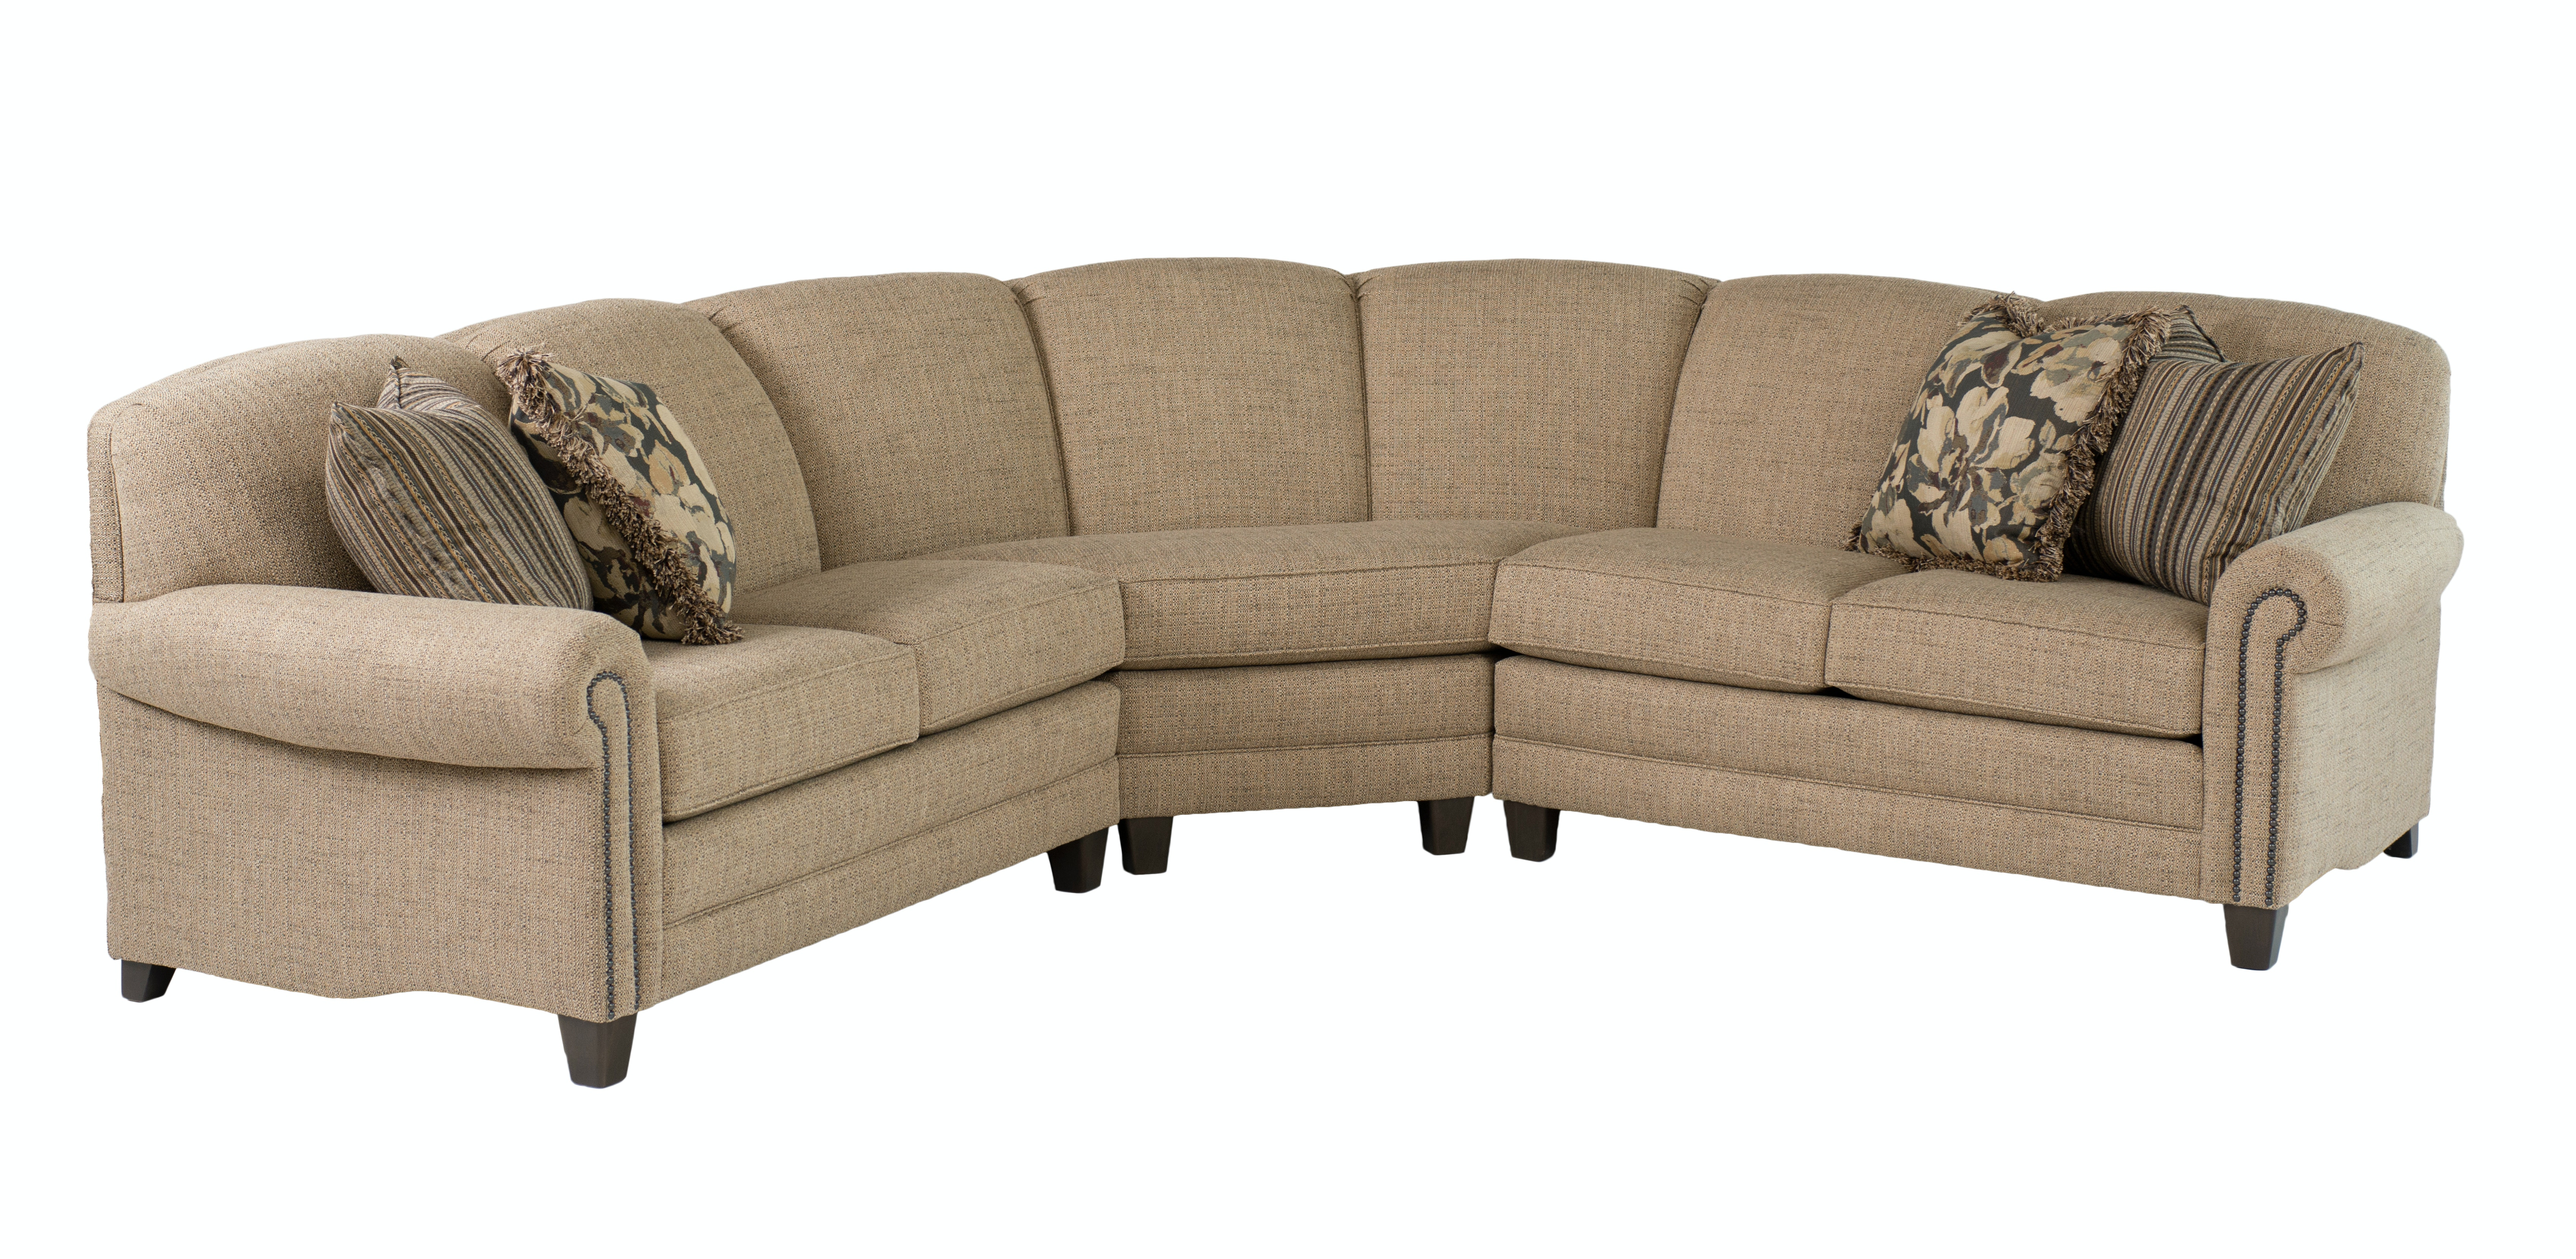 Smith Brothers Living Room 397-sectional - Whitley